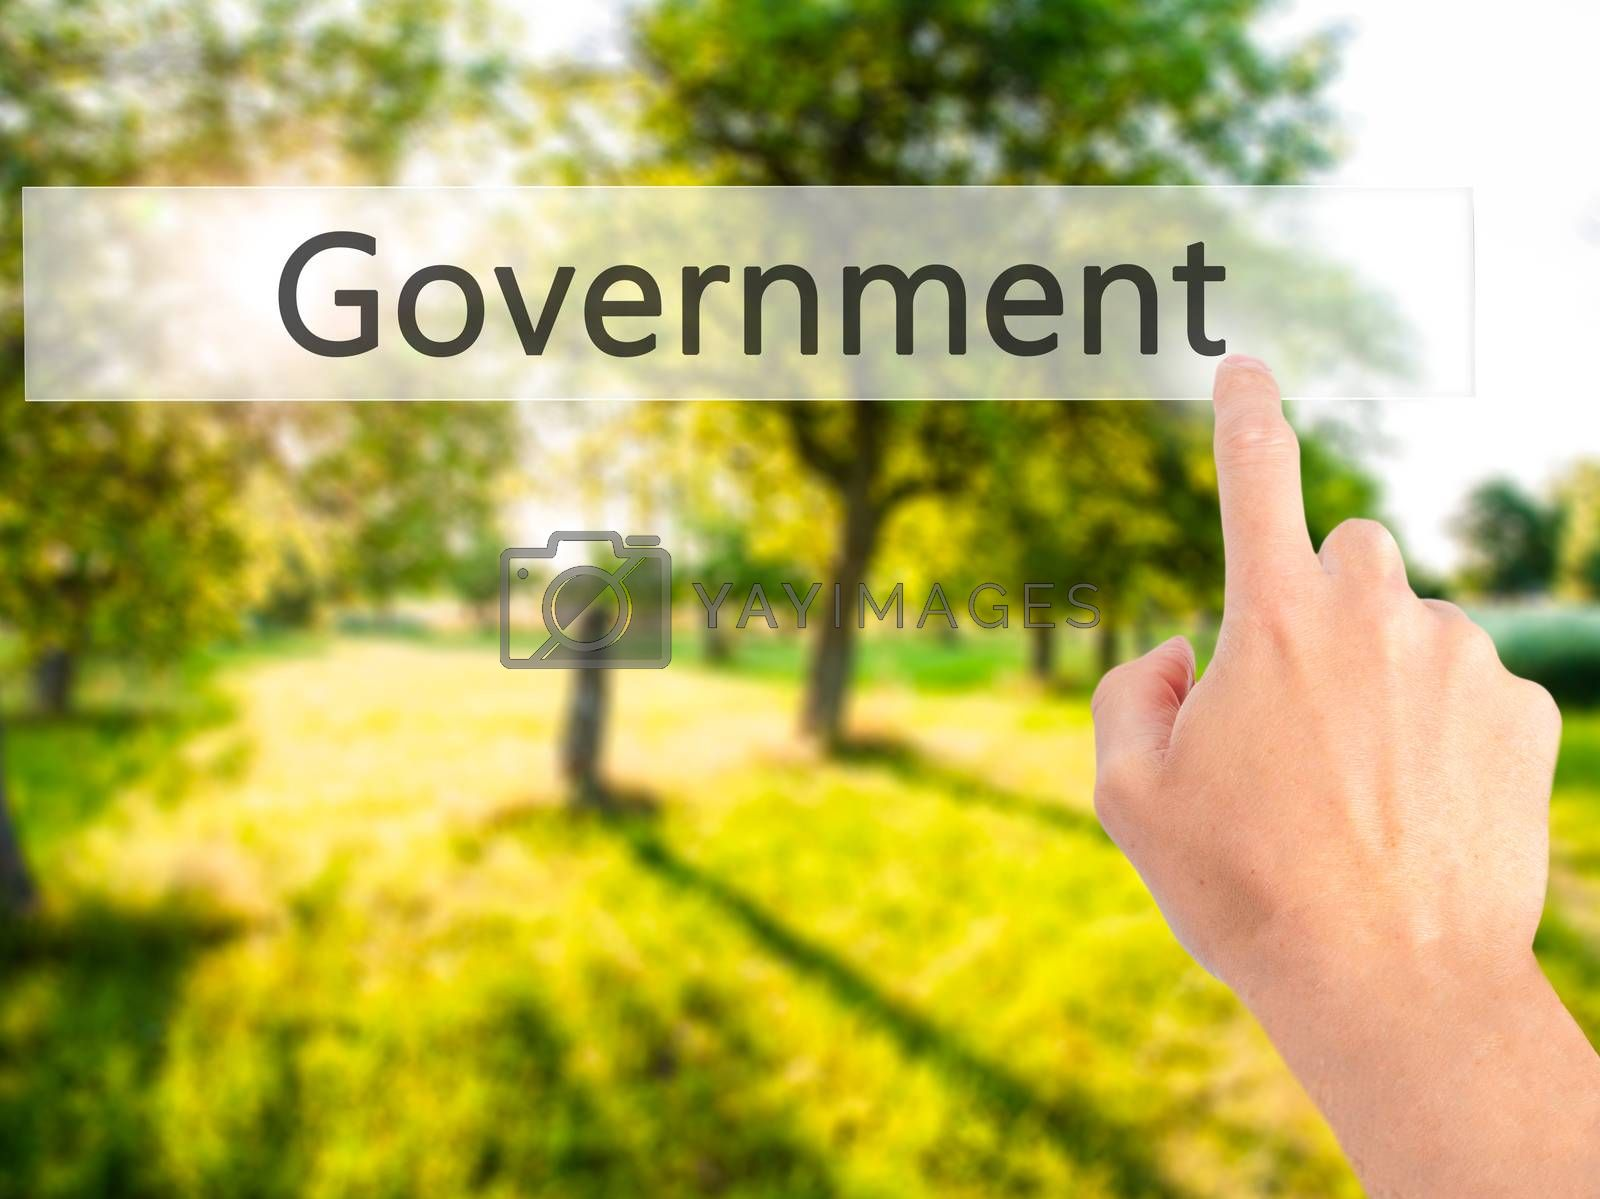 Government - Hand pressing a button on blurred background concep by jackald